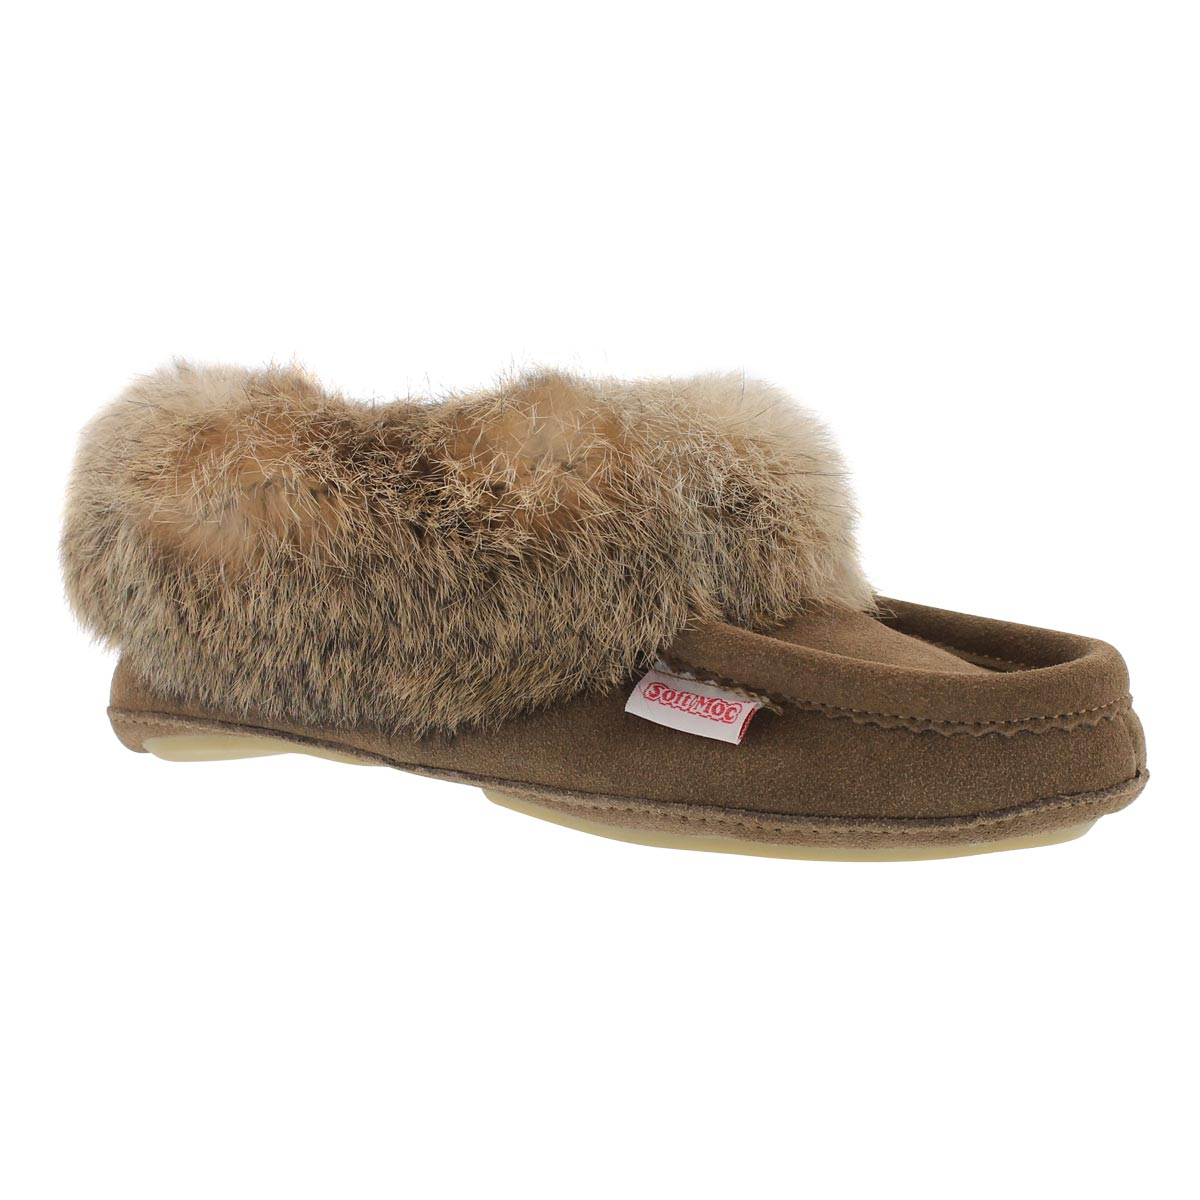 Women's CARROT-II-BIRCH suede rabbit fur moccasins